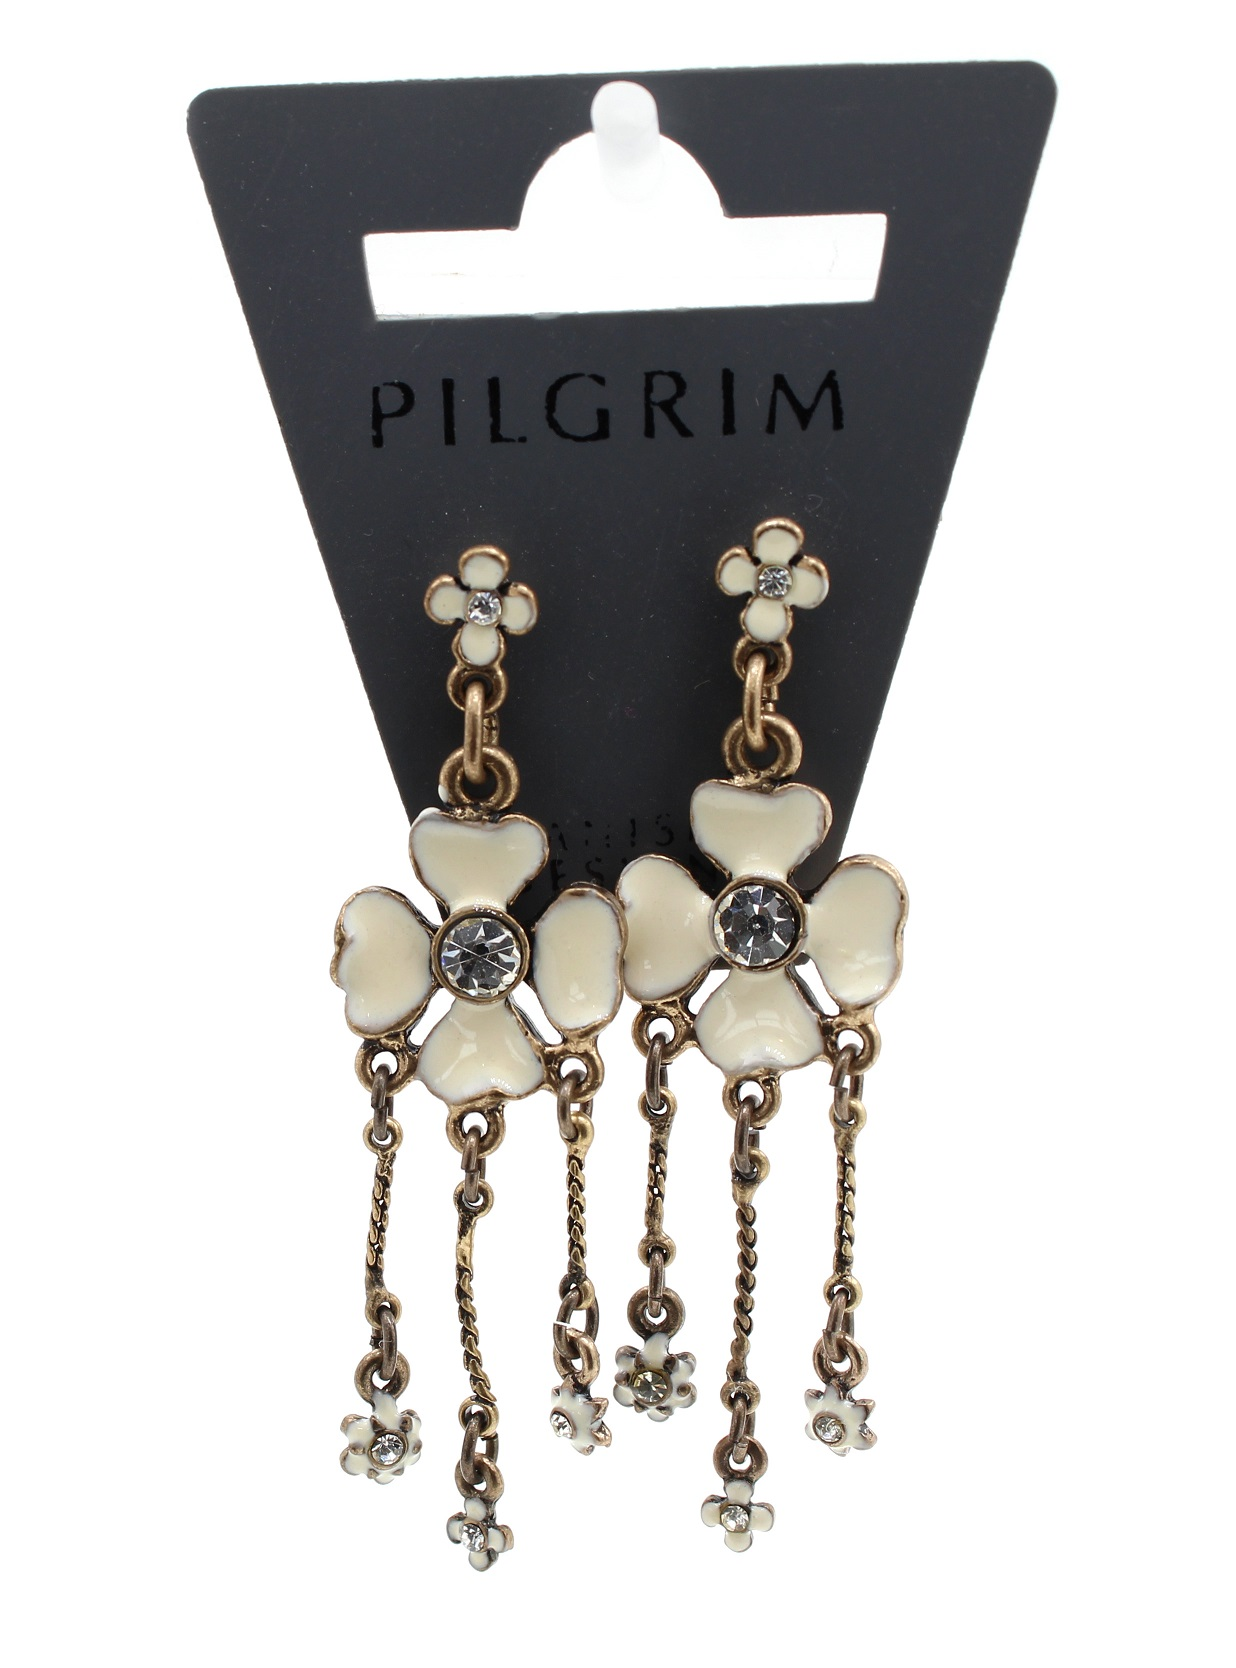 PILGRIM - Daisy - Mid Sized Earrings - Oxidised Gold Plate/White BNWT